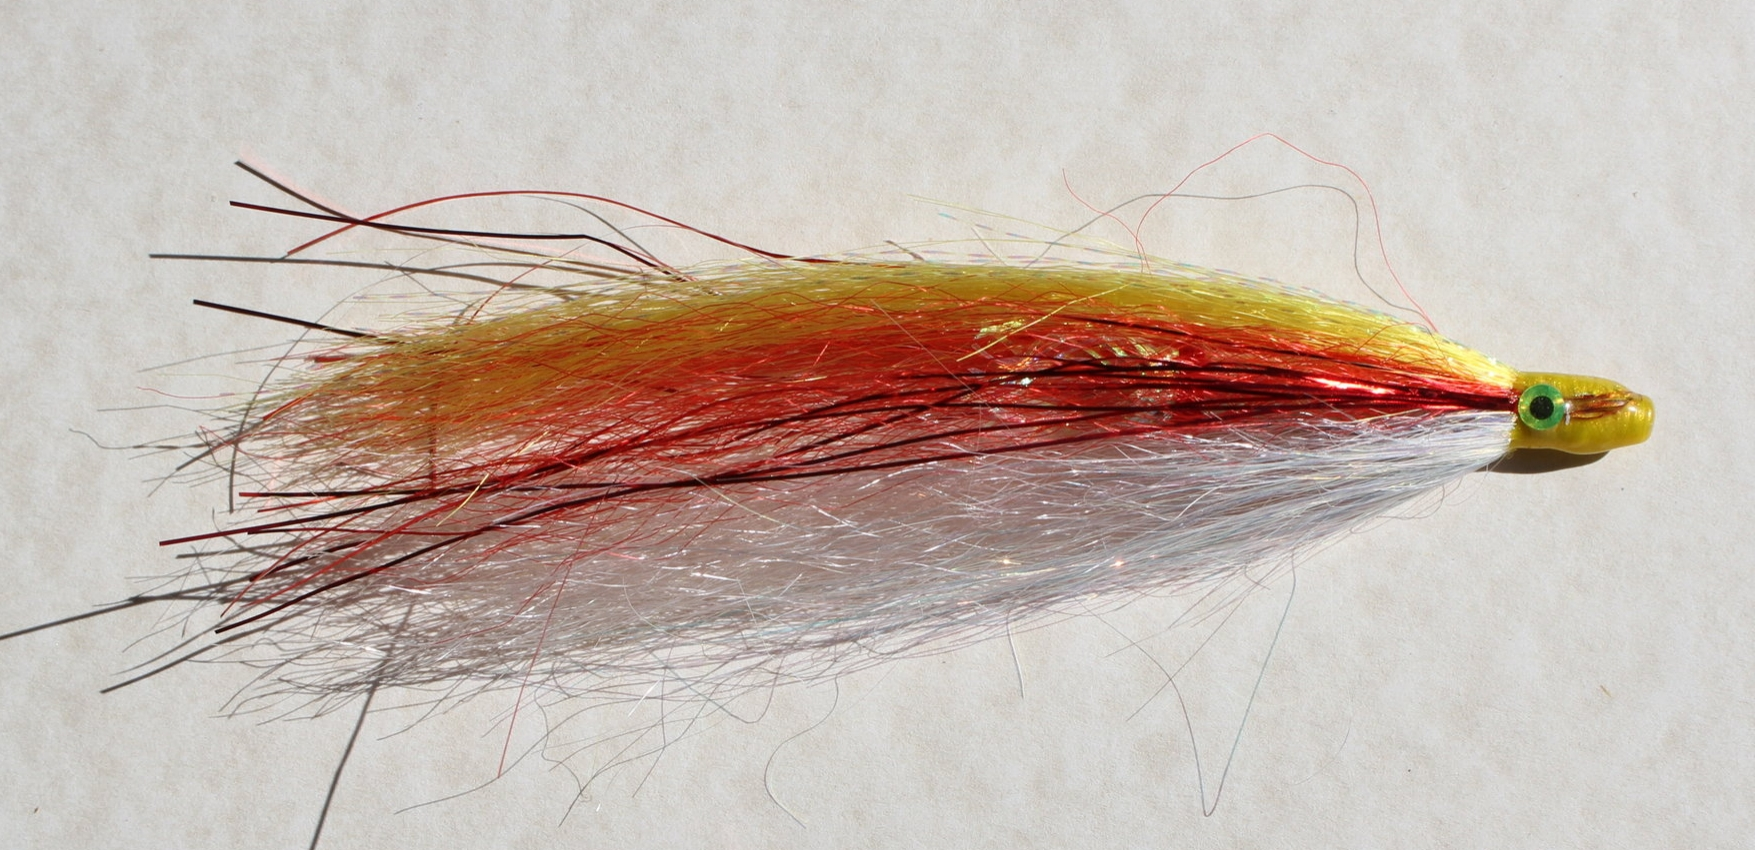 MICKEY FINN, Salmon Series Tube Fly.  Added by requests from Kodiak trollers, this is a gaudy (yellow - red - pearl) pattern that has caught its share of salmon.  These colors contrast well against the blue - gray hues under water.